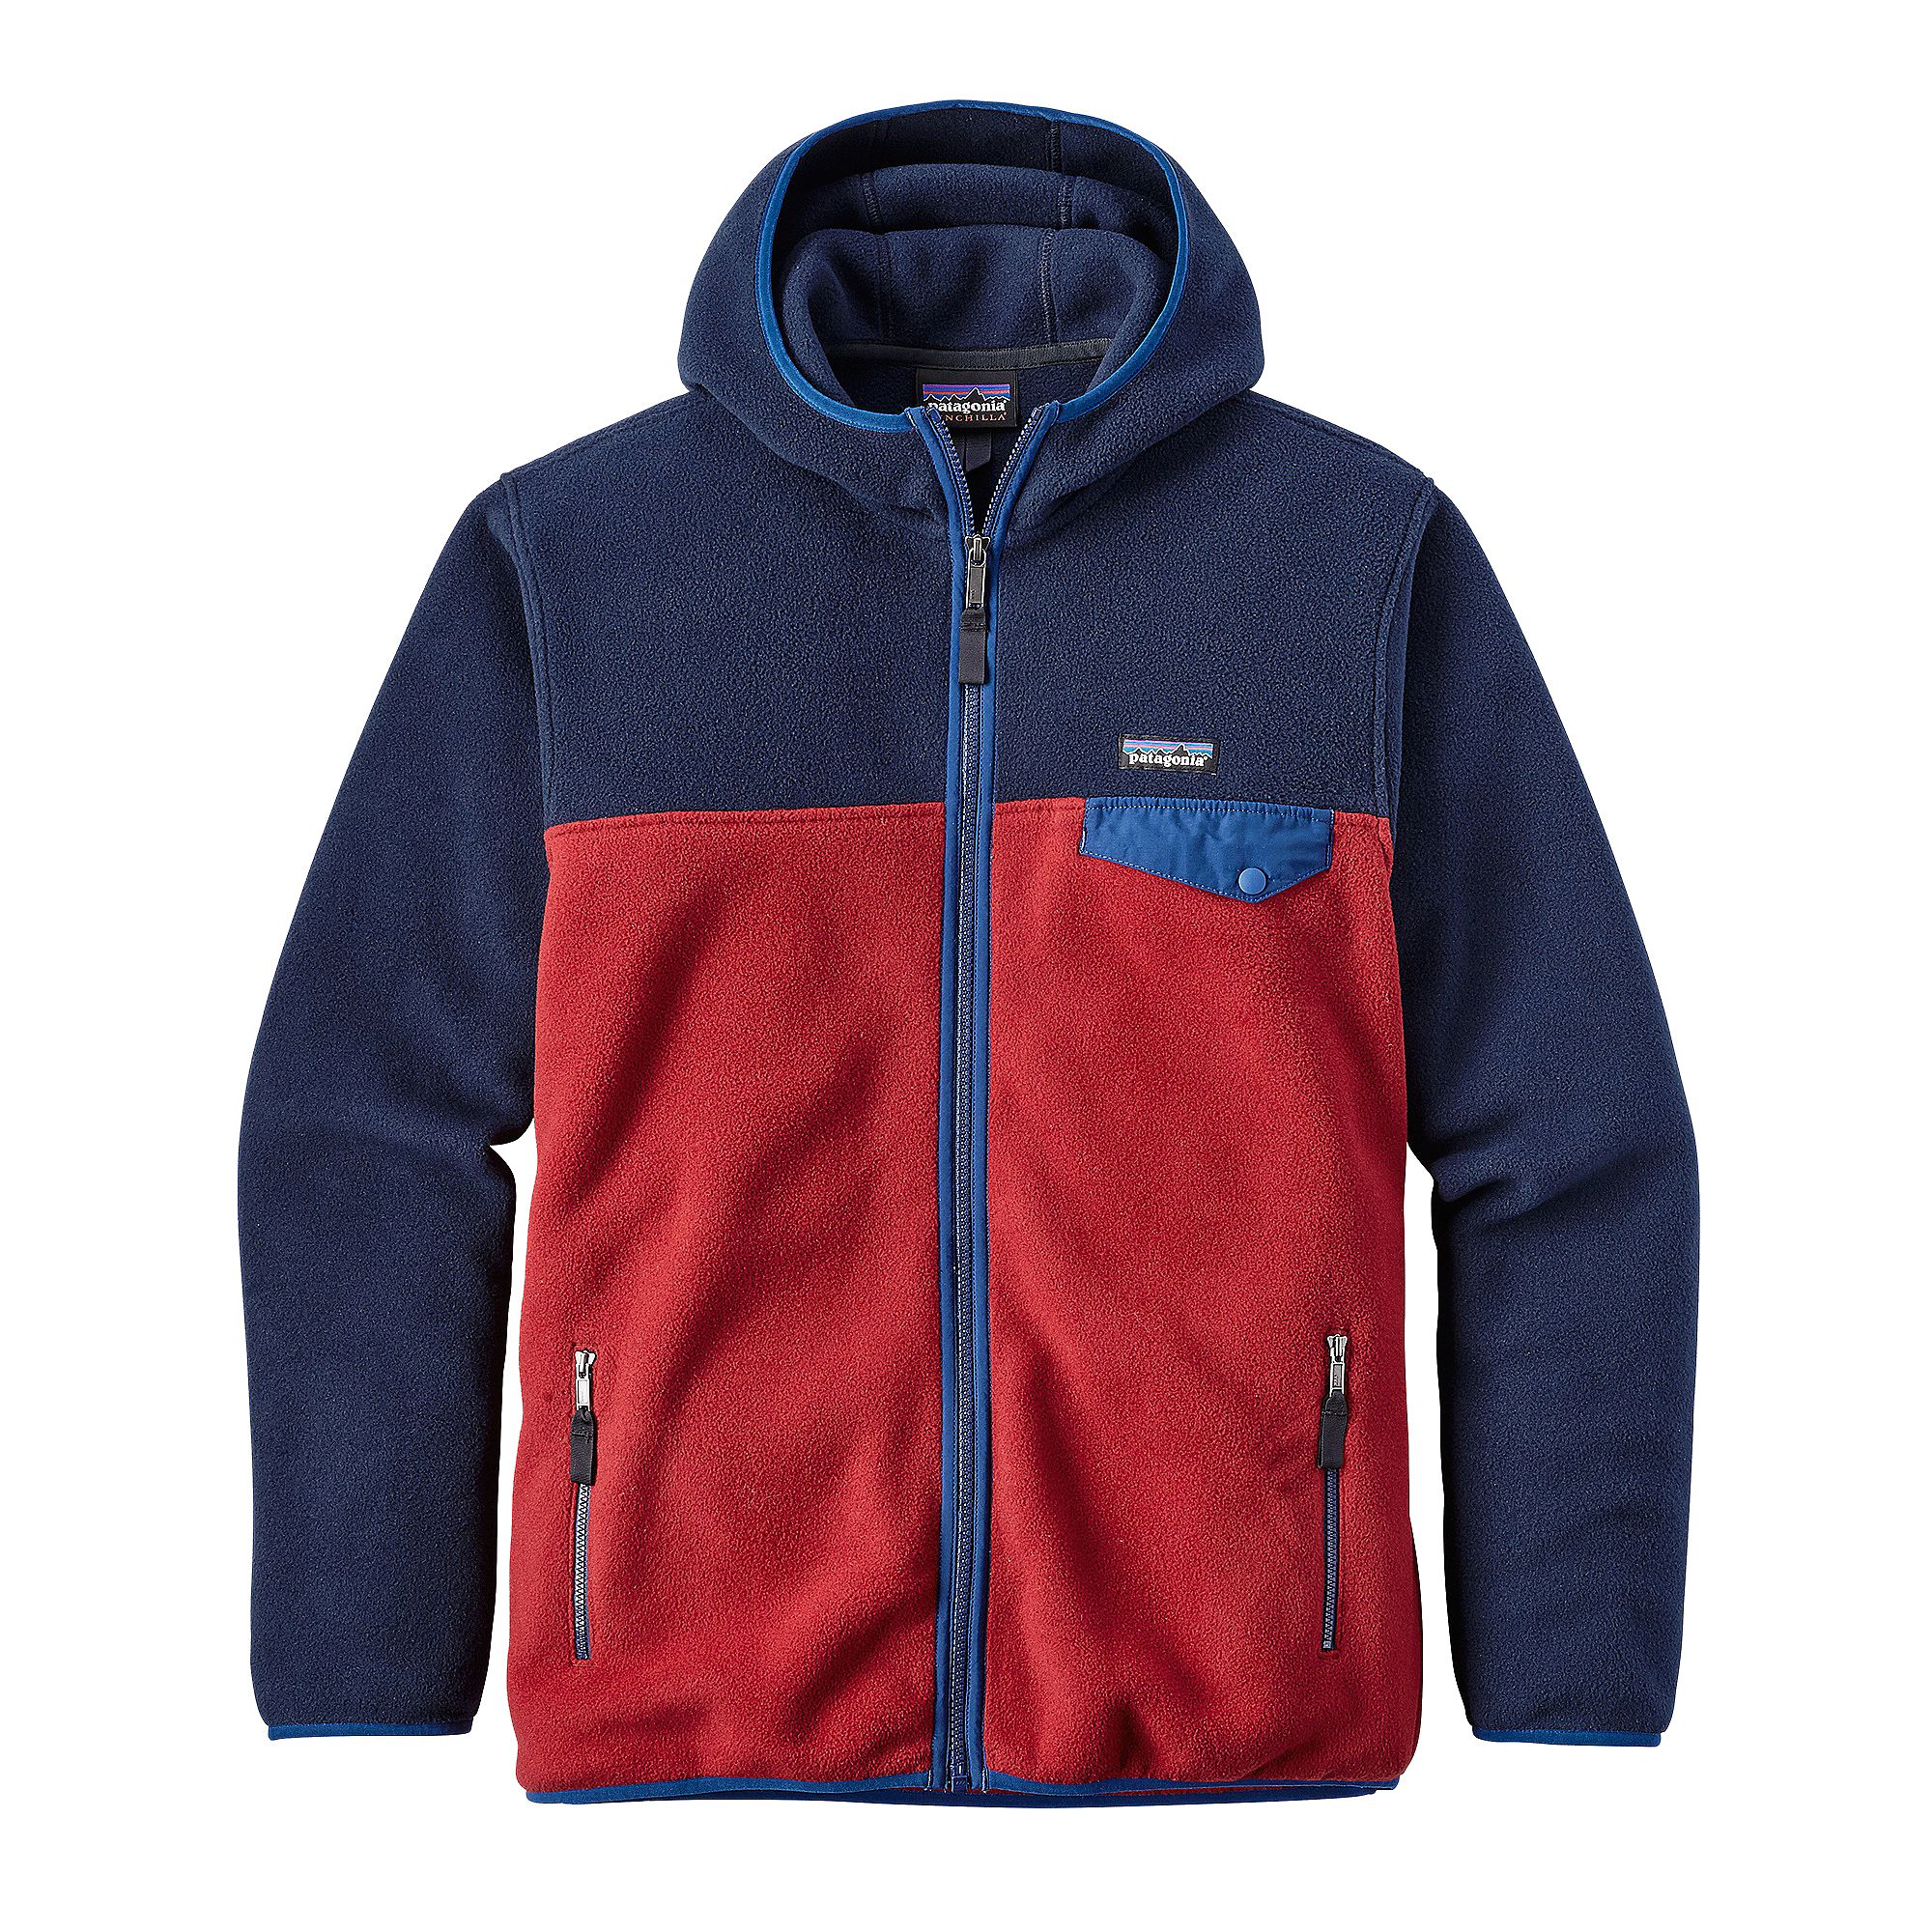 PATAGONIA MEN'S LIGHTWEIGHT SYNCHILLA SNAP-T HOODY (25462)